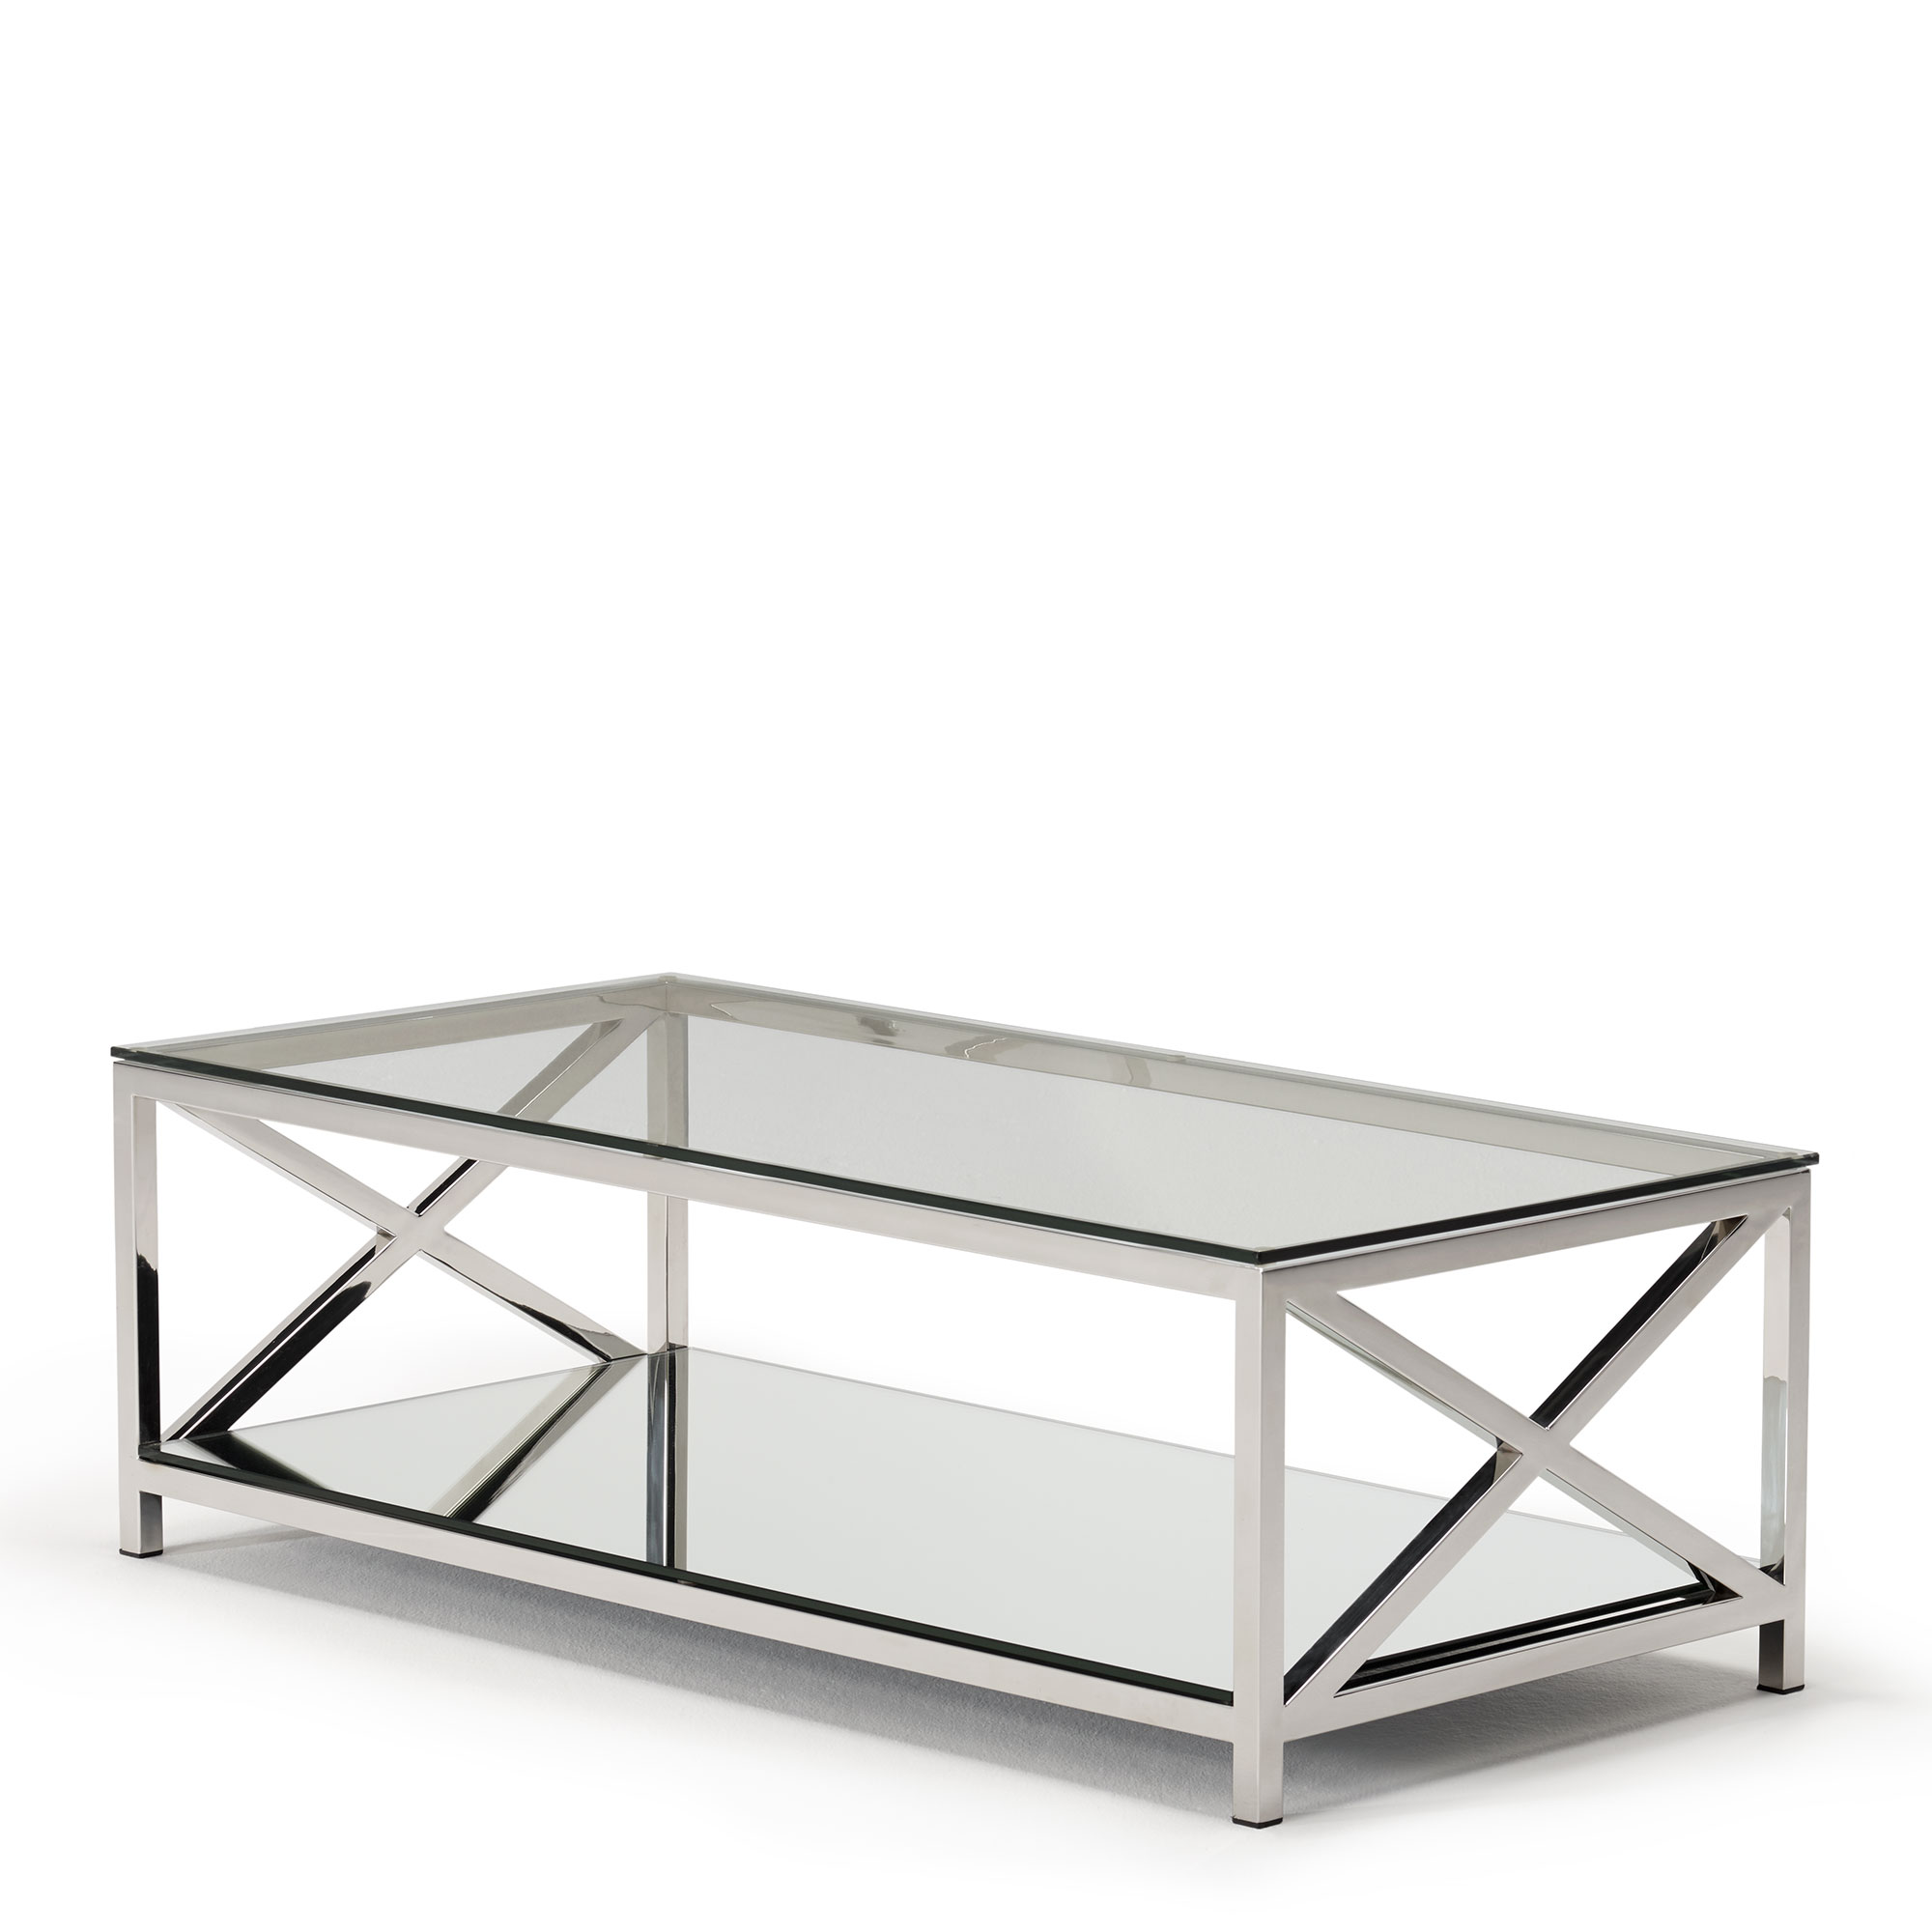 lucia coffee table with glass top stainless steel frame